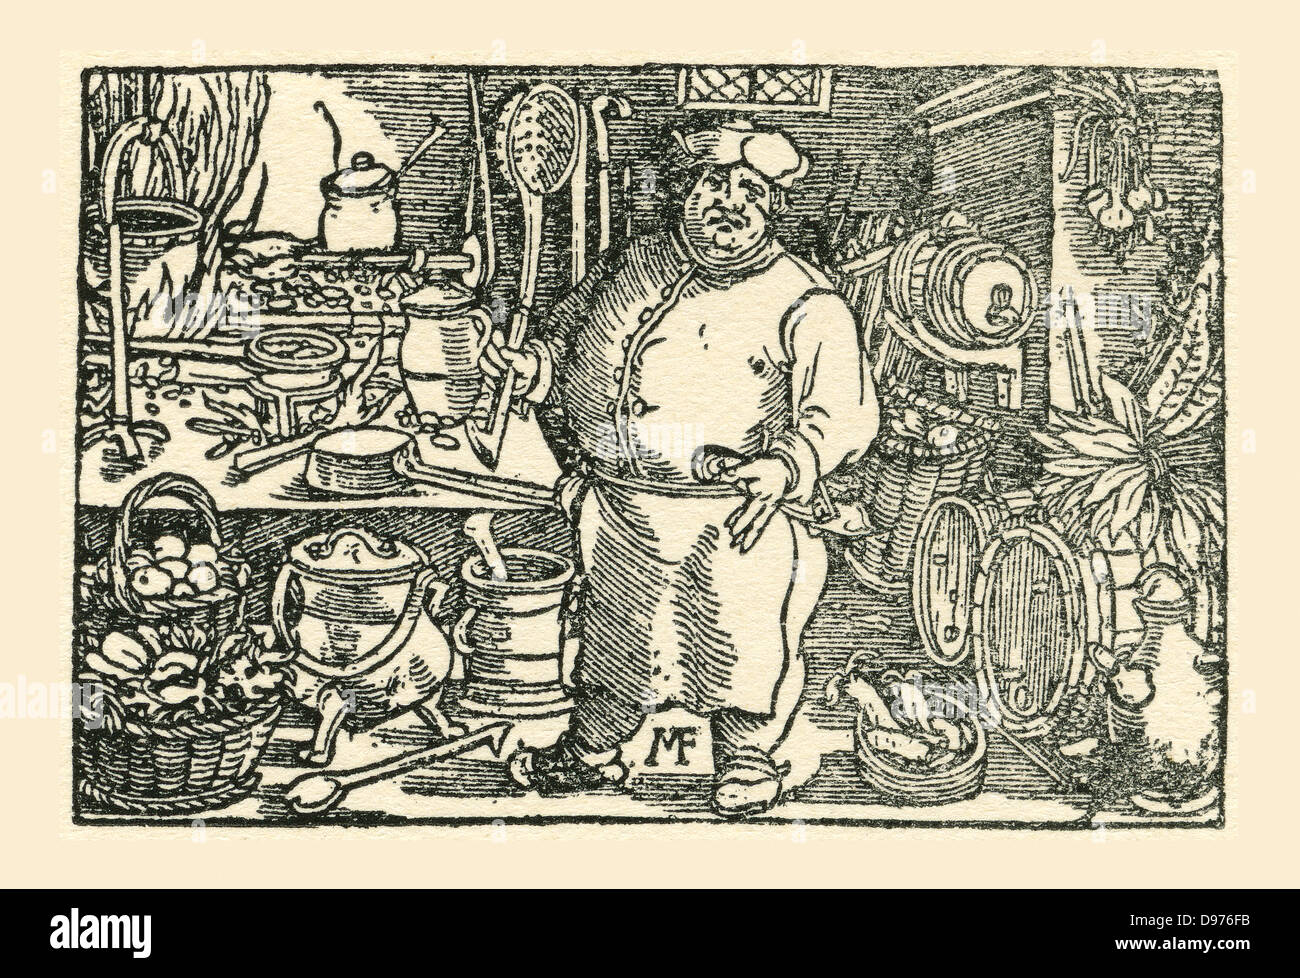 A chef from the Tudor period in England. From a contemporary print. - Stock Image